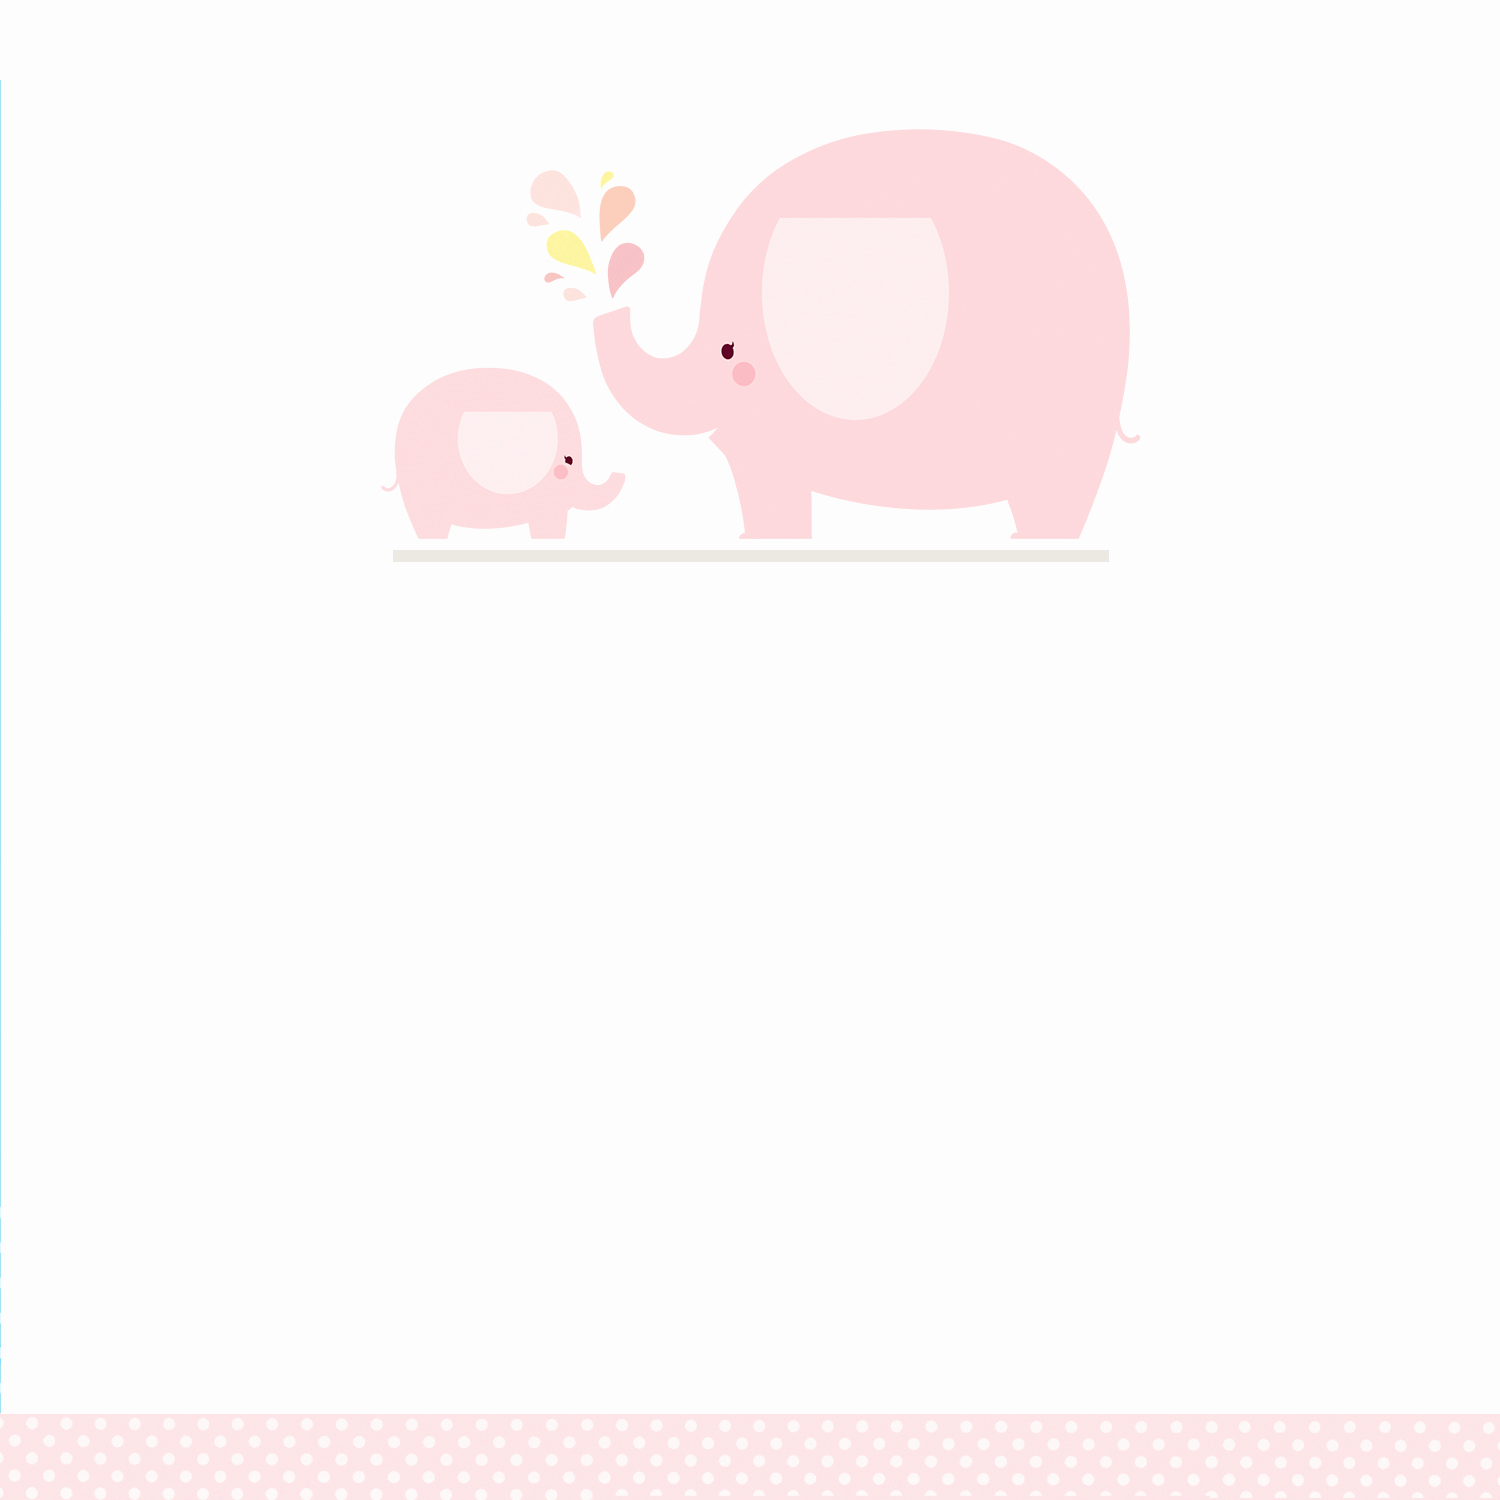 Elephant Baby Shower Invitation Templates New Pink Baby Elephant Free Printable Baby Shower Invitation